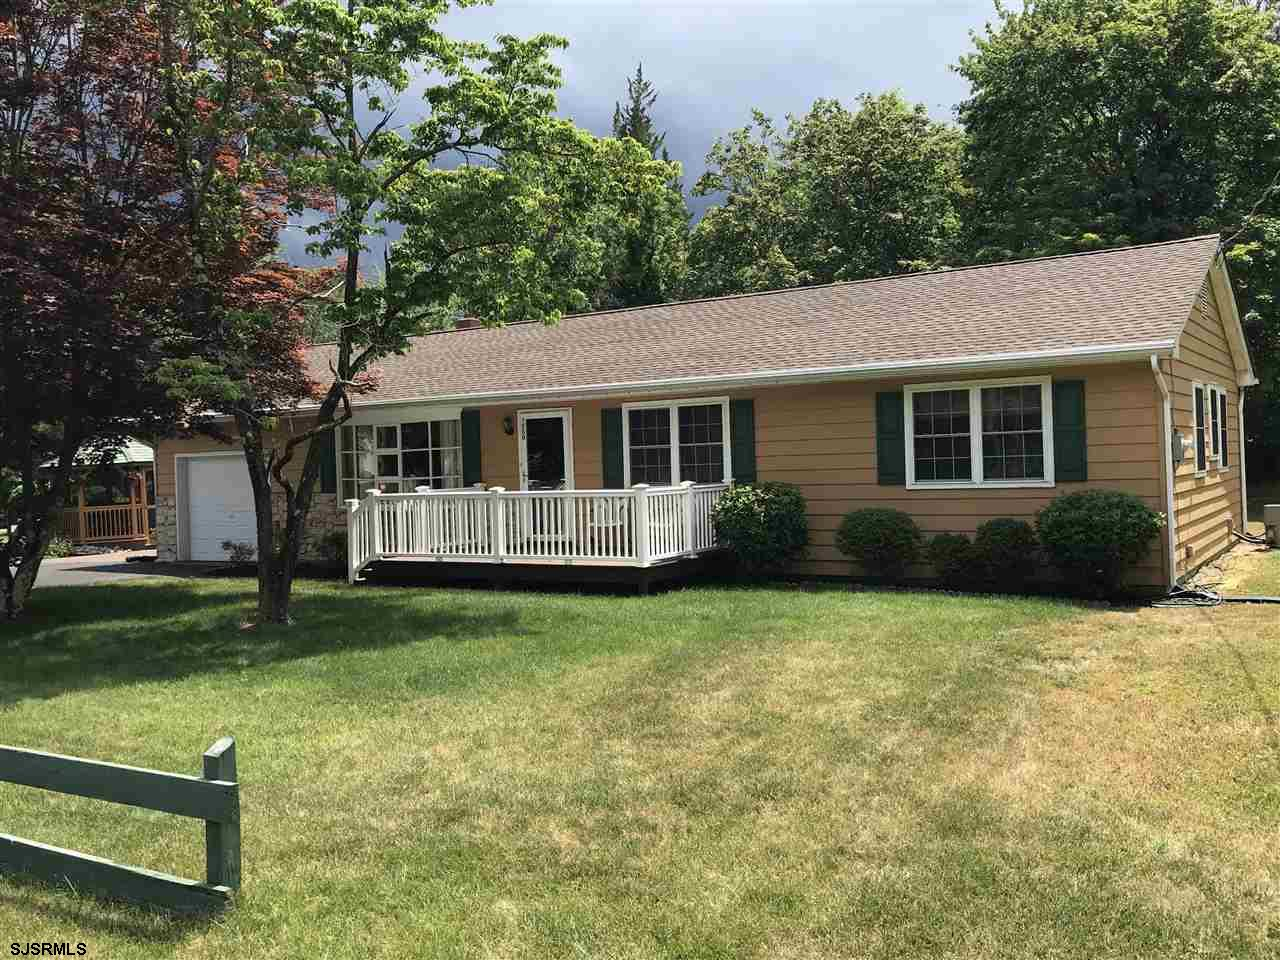 ***NEW LISTING***BEAUTIFULLY MAINTAINED AND CARED FOR RAMBLING 4 BEDROOM 1 1/2 BATH RANCH with PROFE